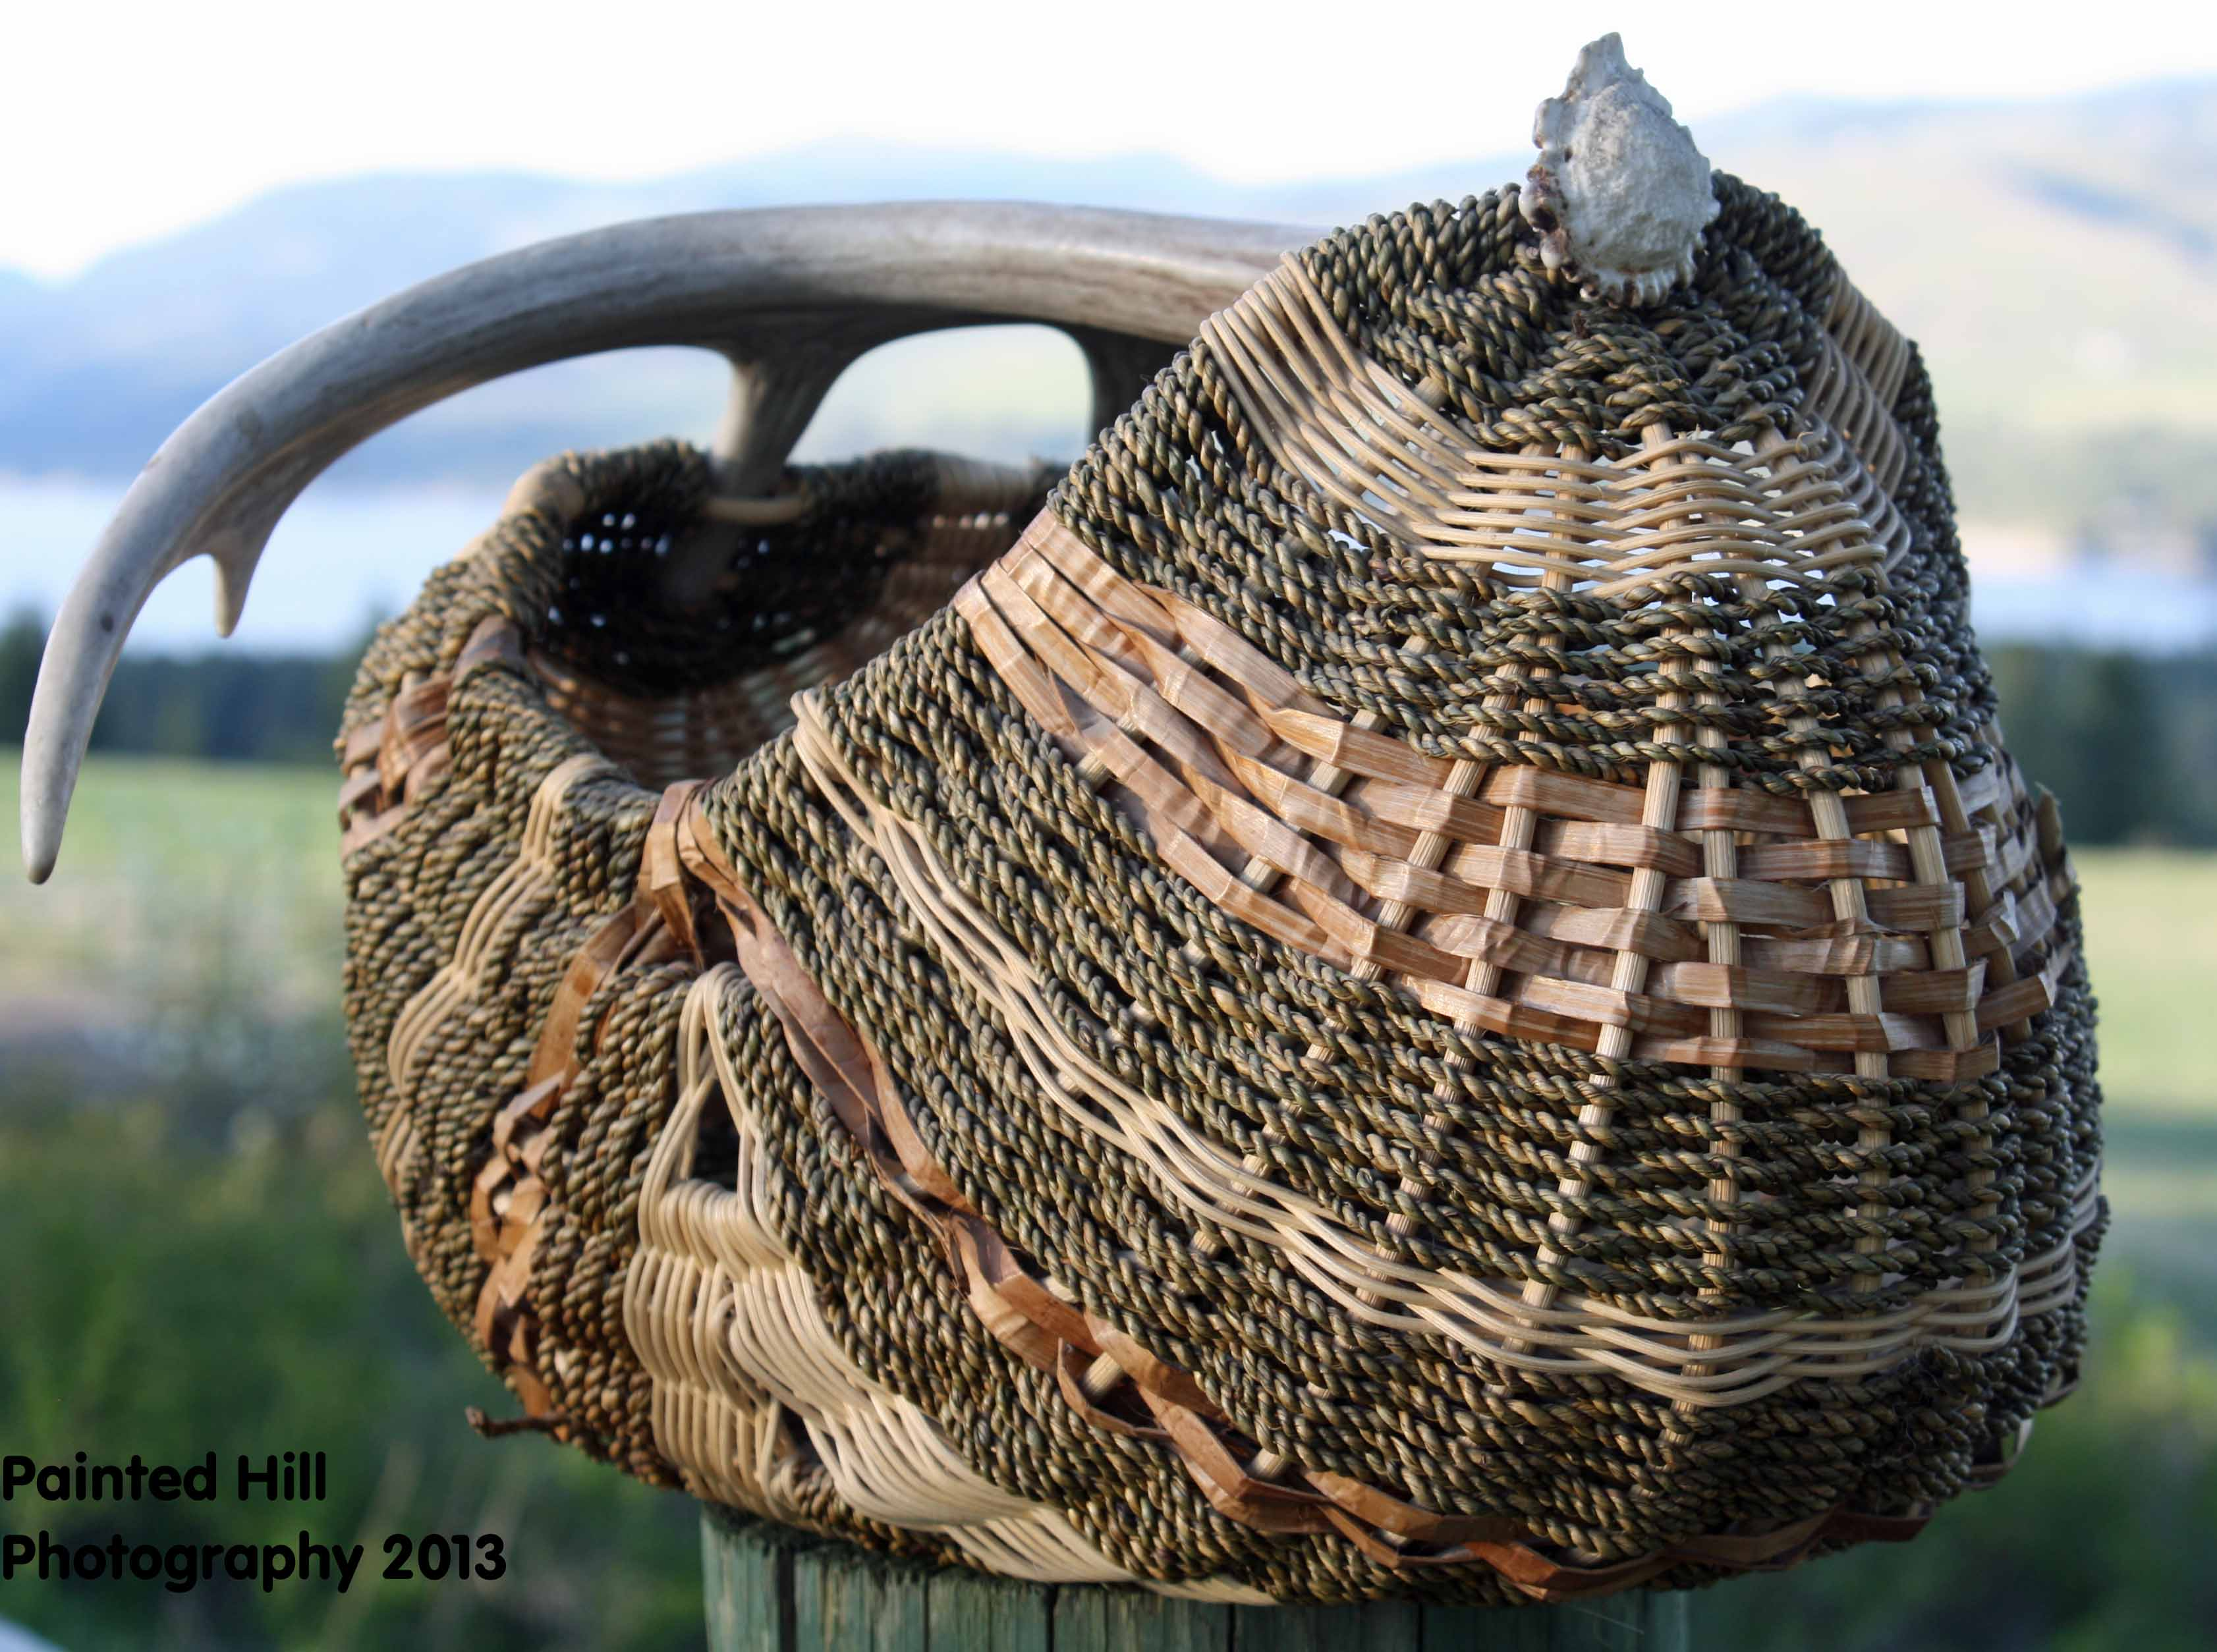 Traditional Basket Making : Speckled fish people traditional basket making carmen peone